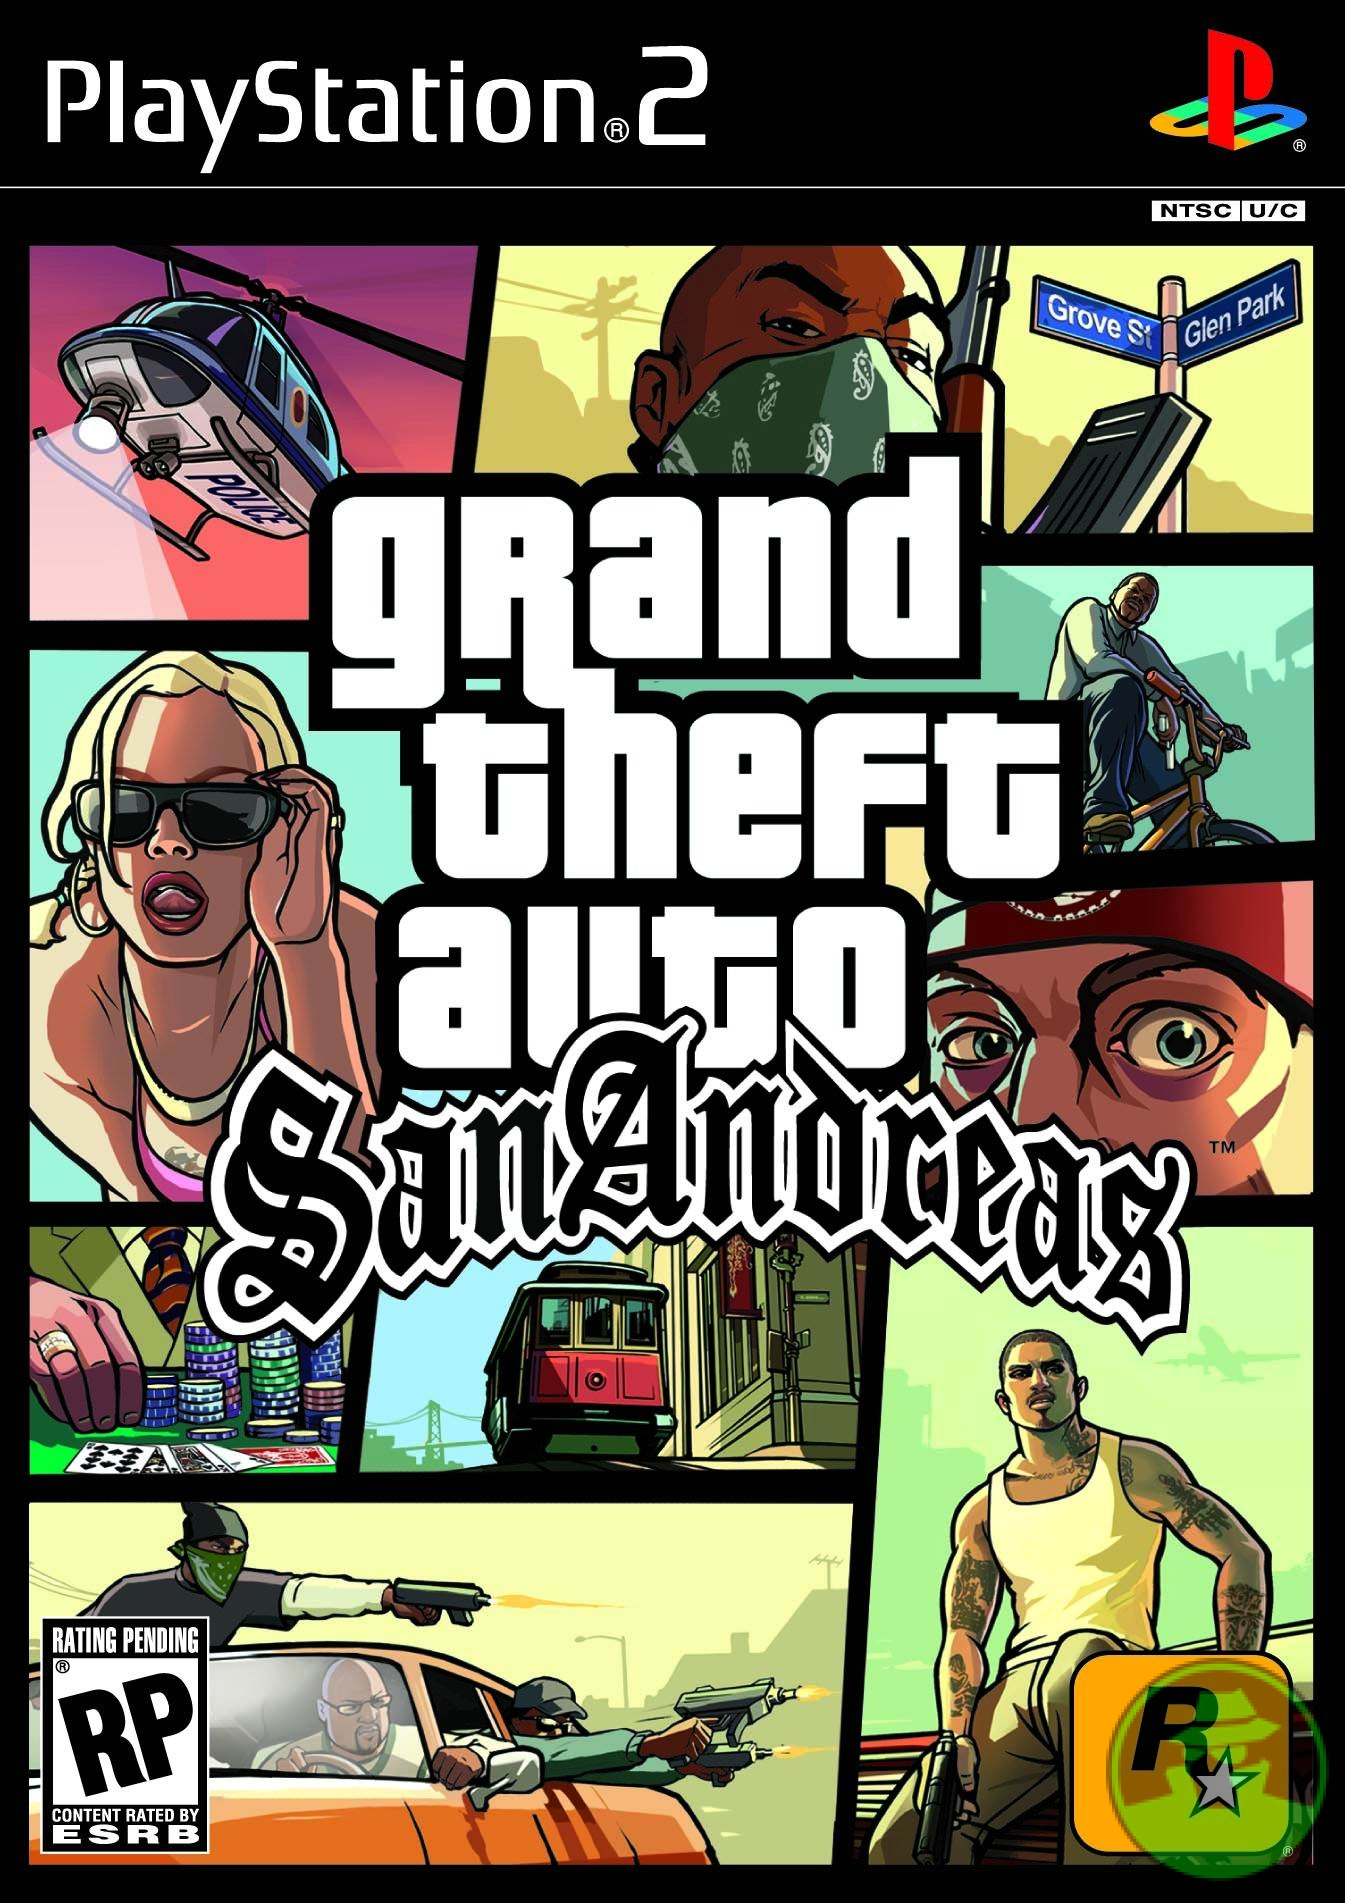 Grand theft auto san andreas for psp for